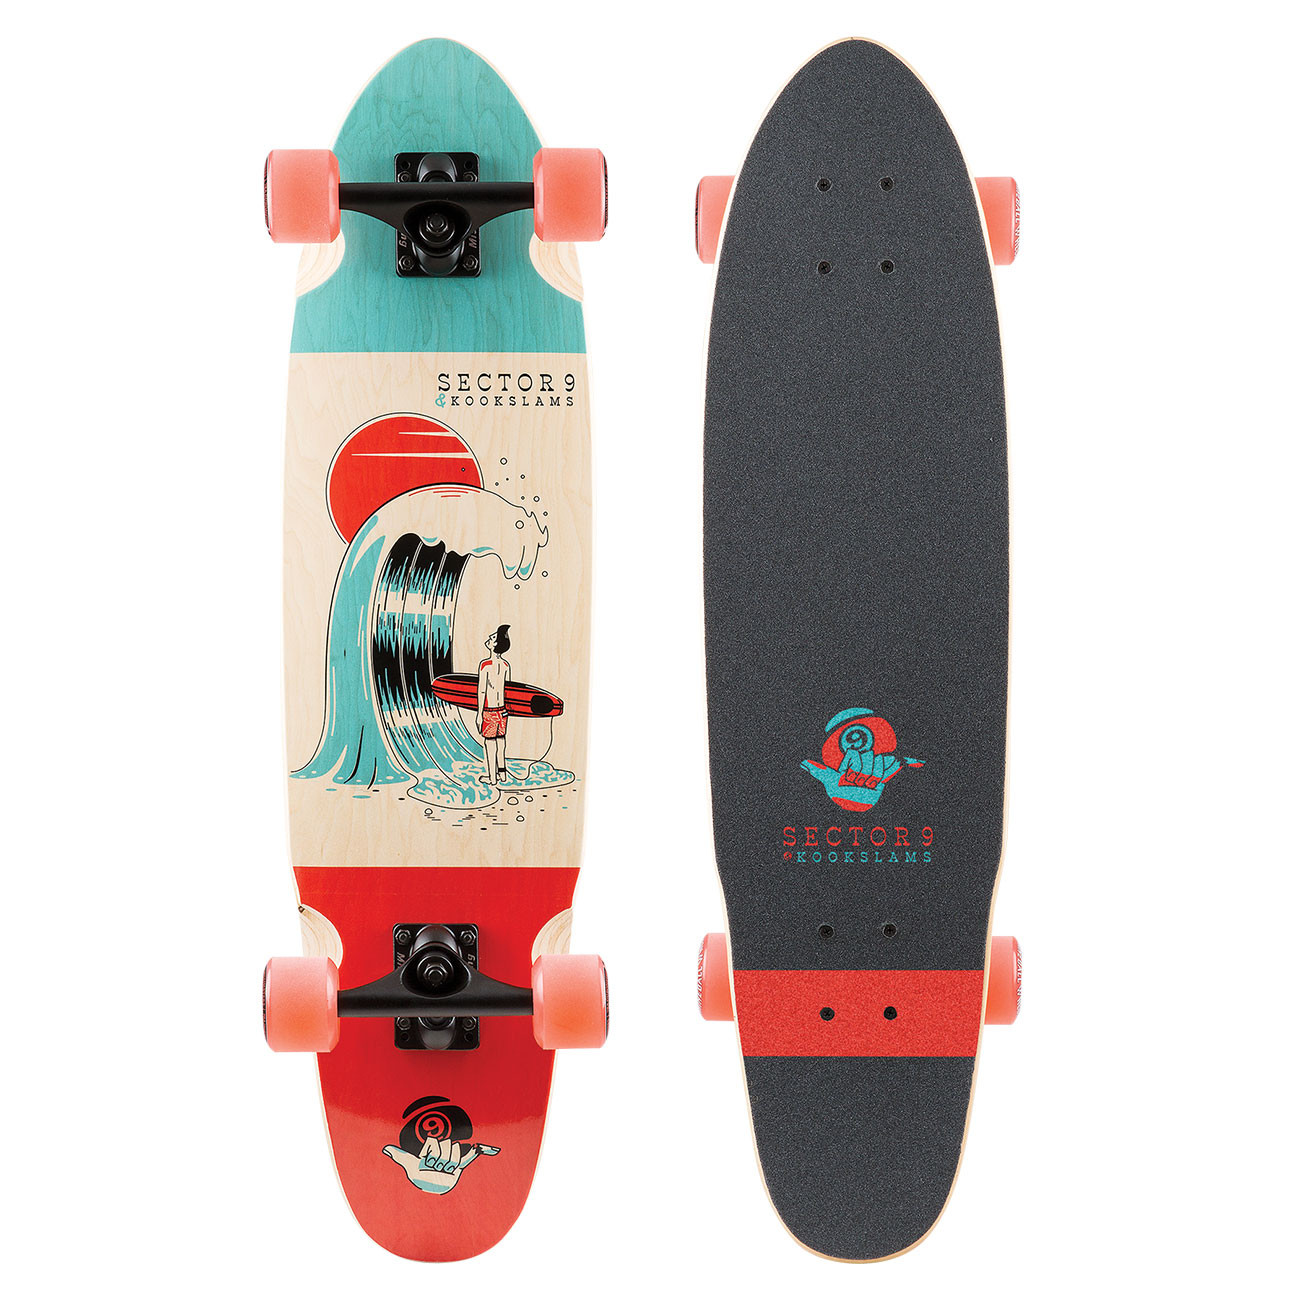 Longboard Sector 9 #outthere 31.5""